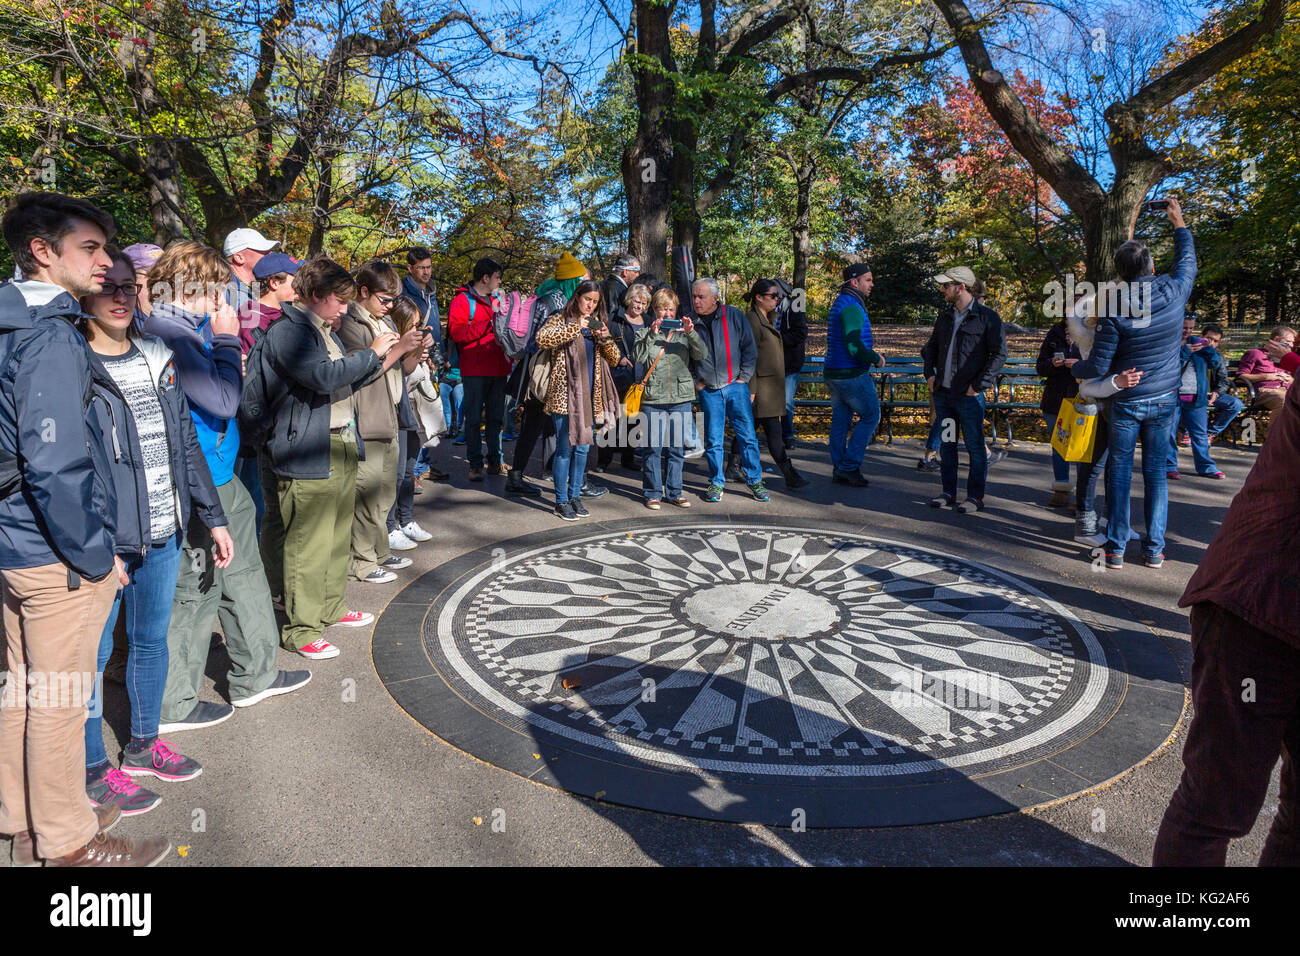 Tourists surrounding the Imagine mosaic at the Strawberry Fields memorial to John Lennon, Central Park, New York - Stock Image